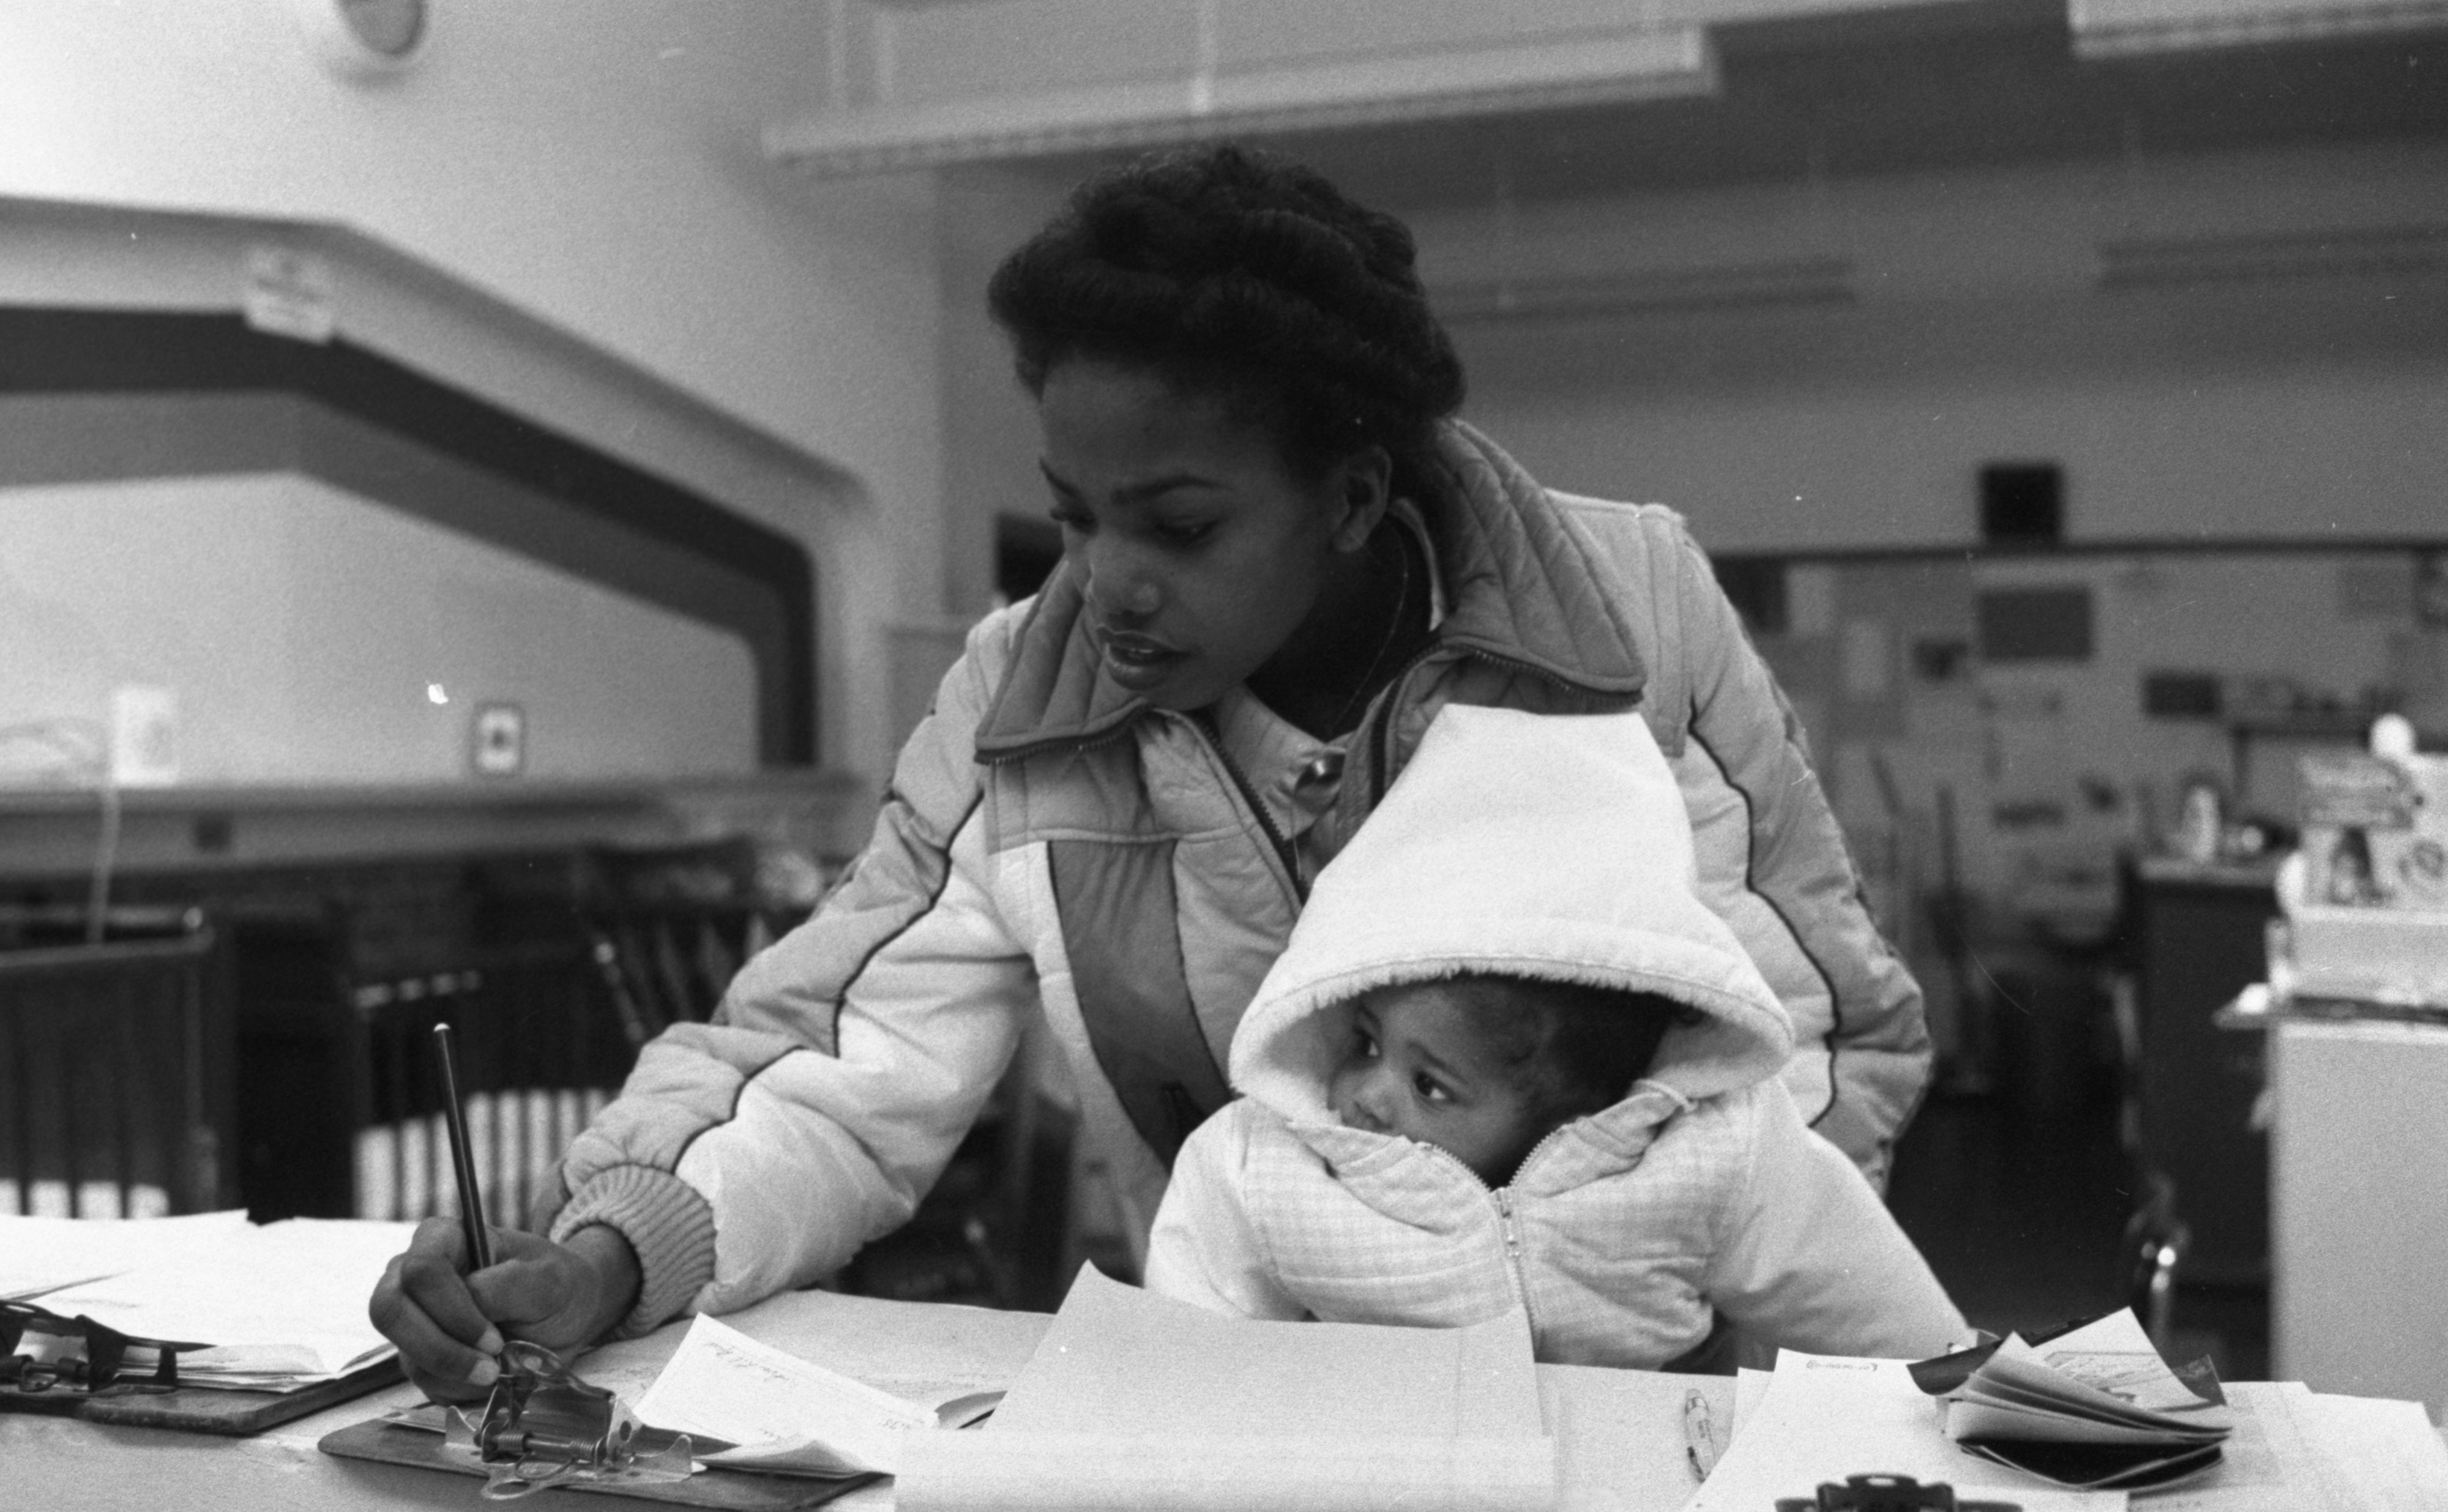 Sheila McSpadden Participates In Washtenaw County's School-Age Parent Program At Community High School, January 1982 image